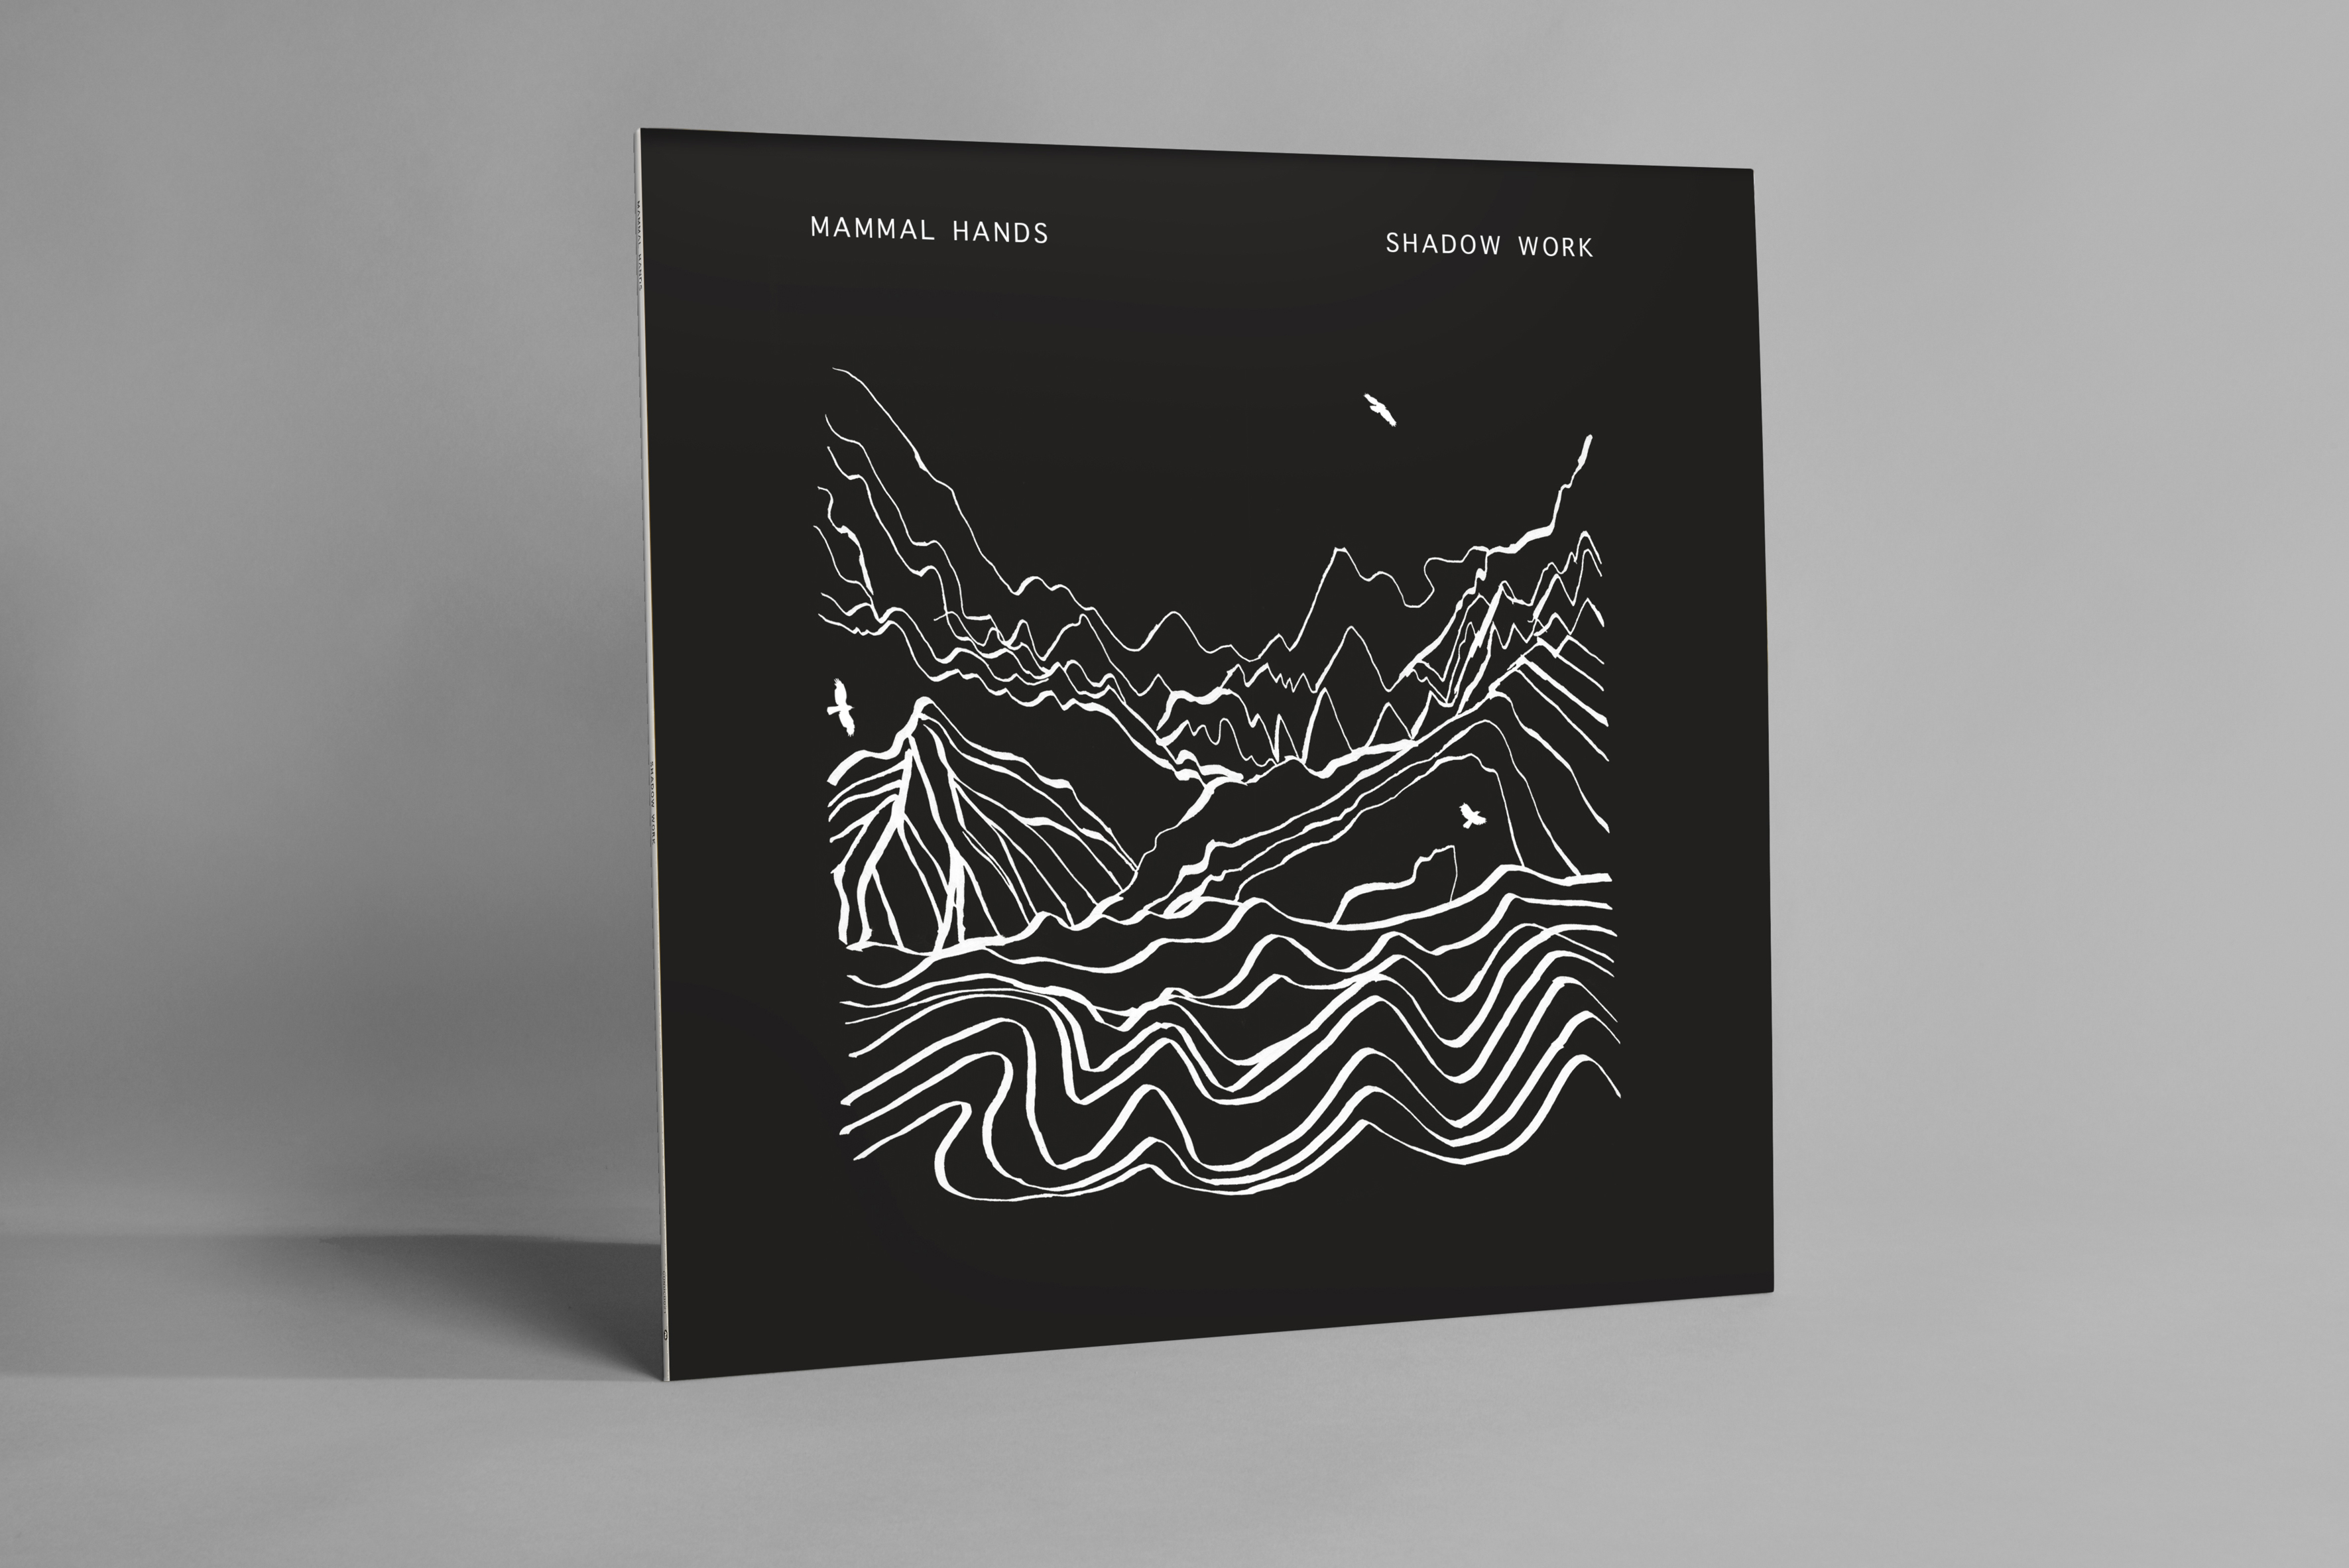 1. GOND021 - Mammal Hands - Shadow Work - Vinyl Front 1